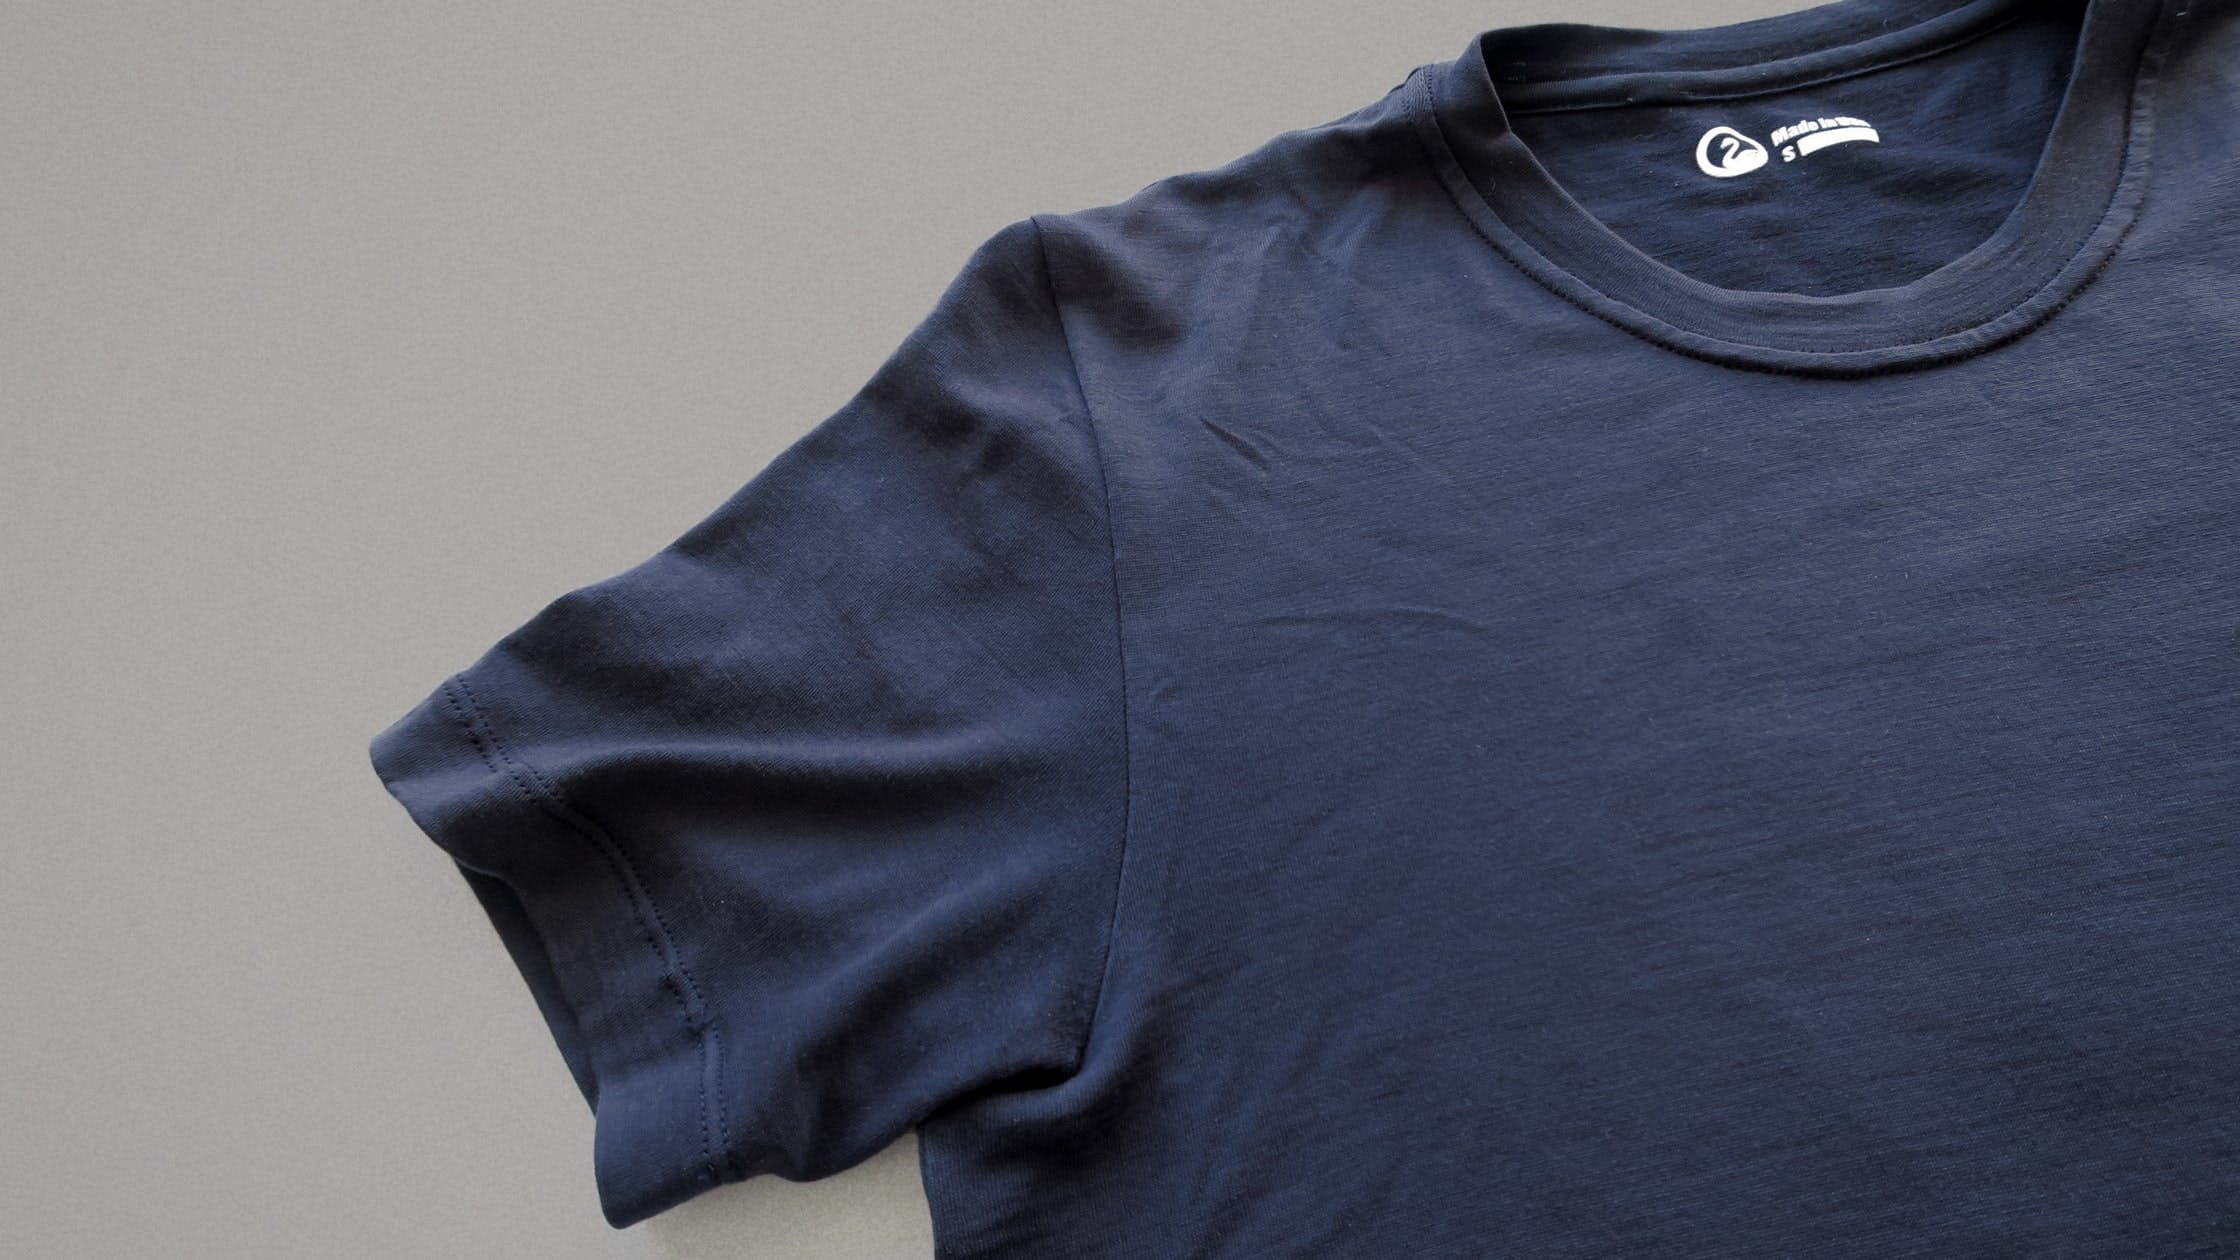 Outlier ultrafine merino t shirt review pack hacker for Merino wool shirts for travel